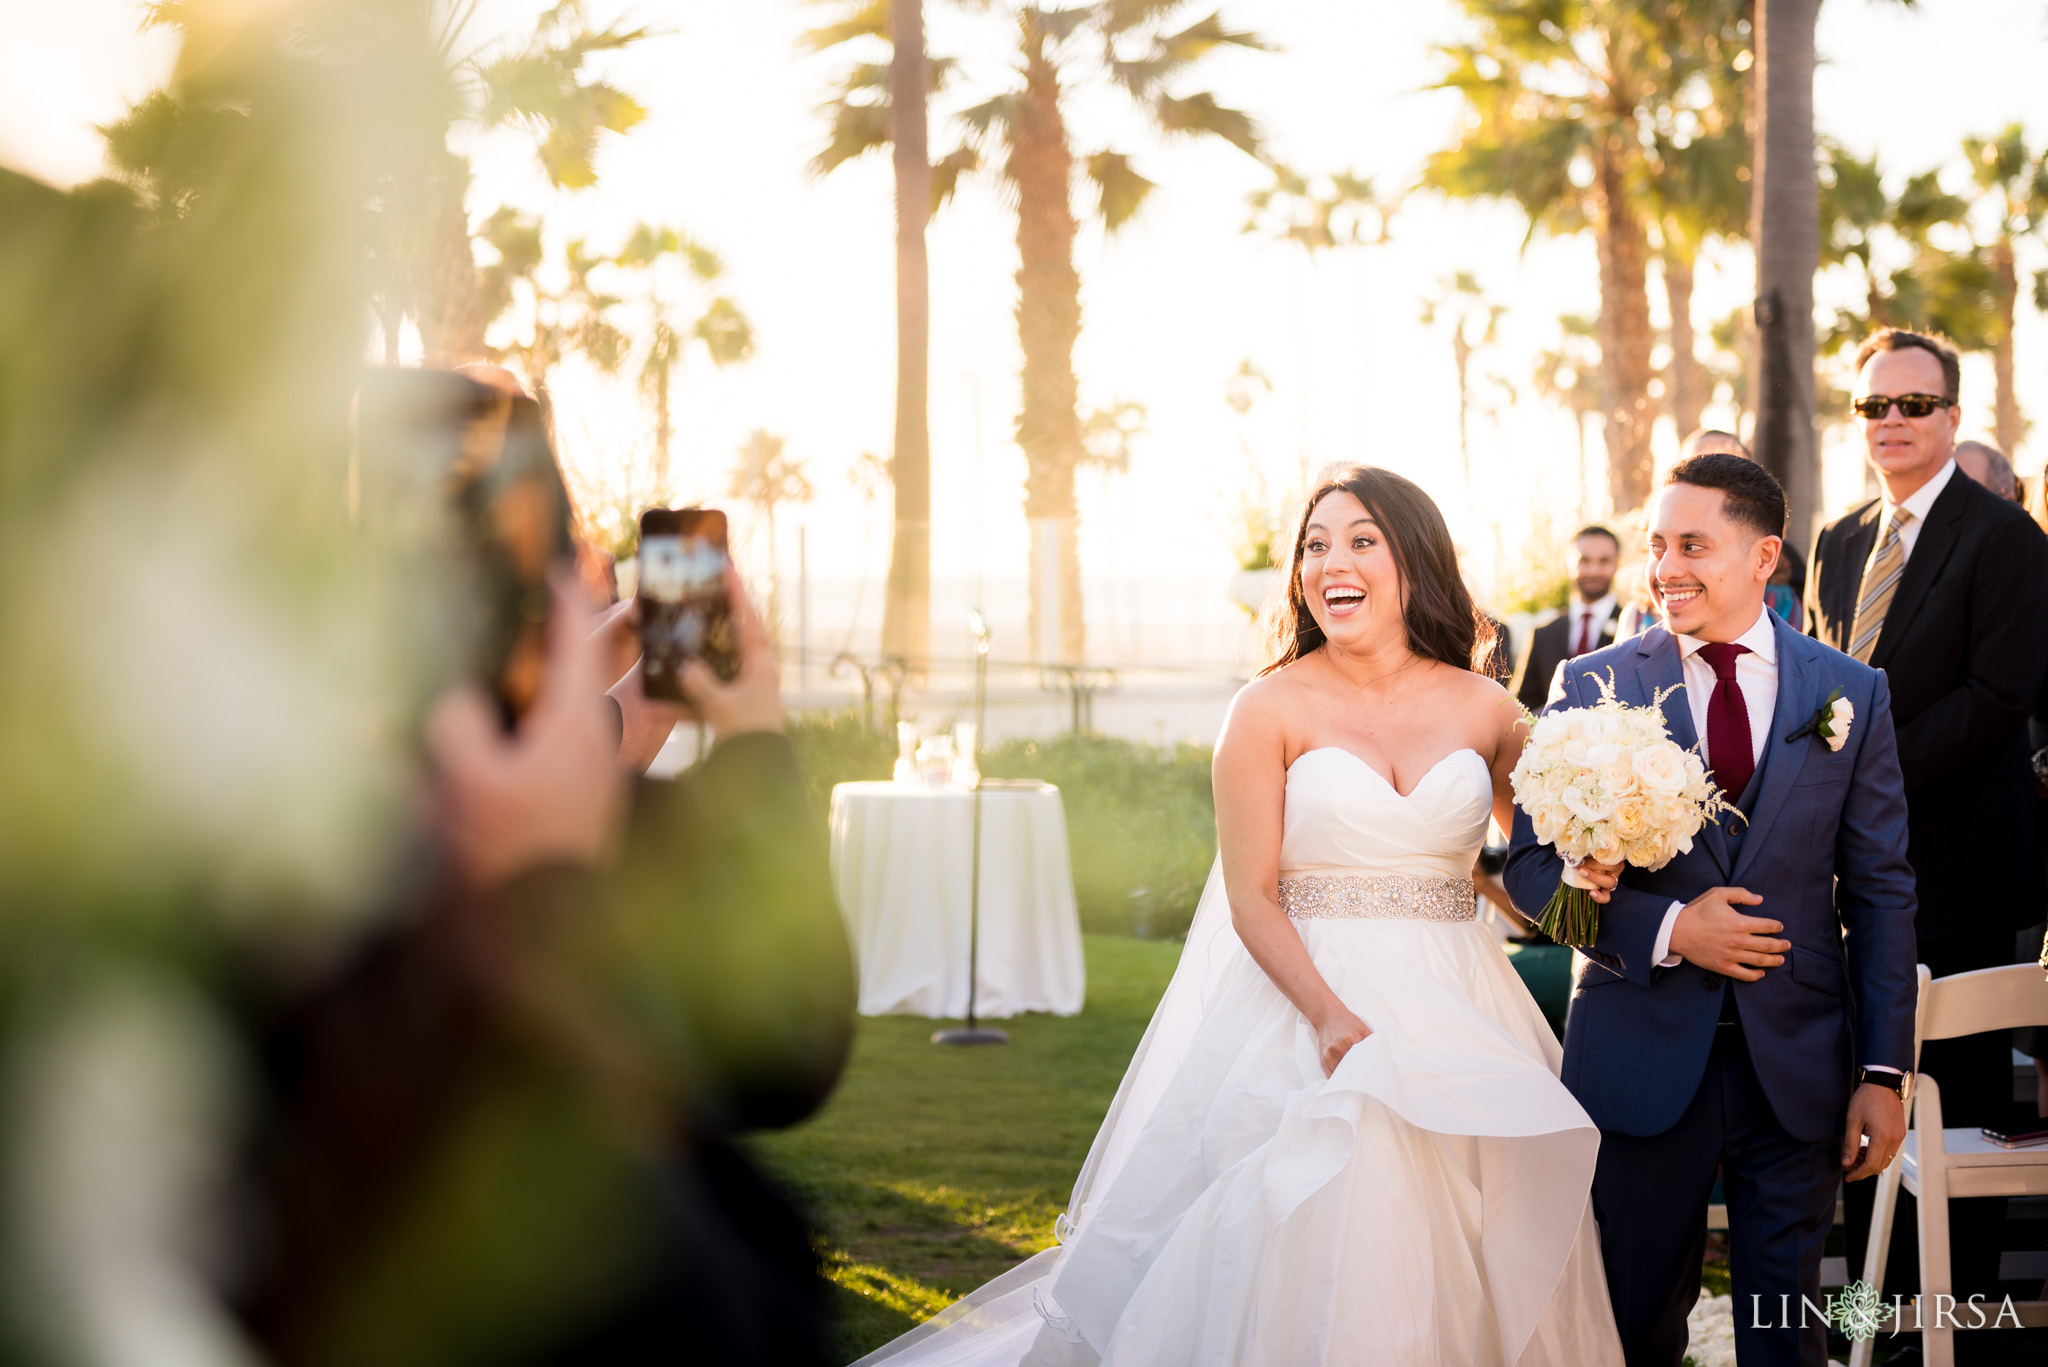 24 hyatt regency huntington beach wedding ceremony photography